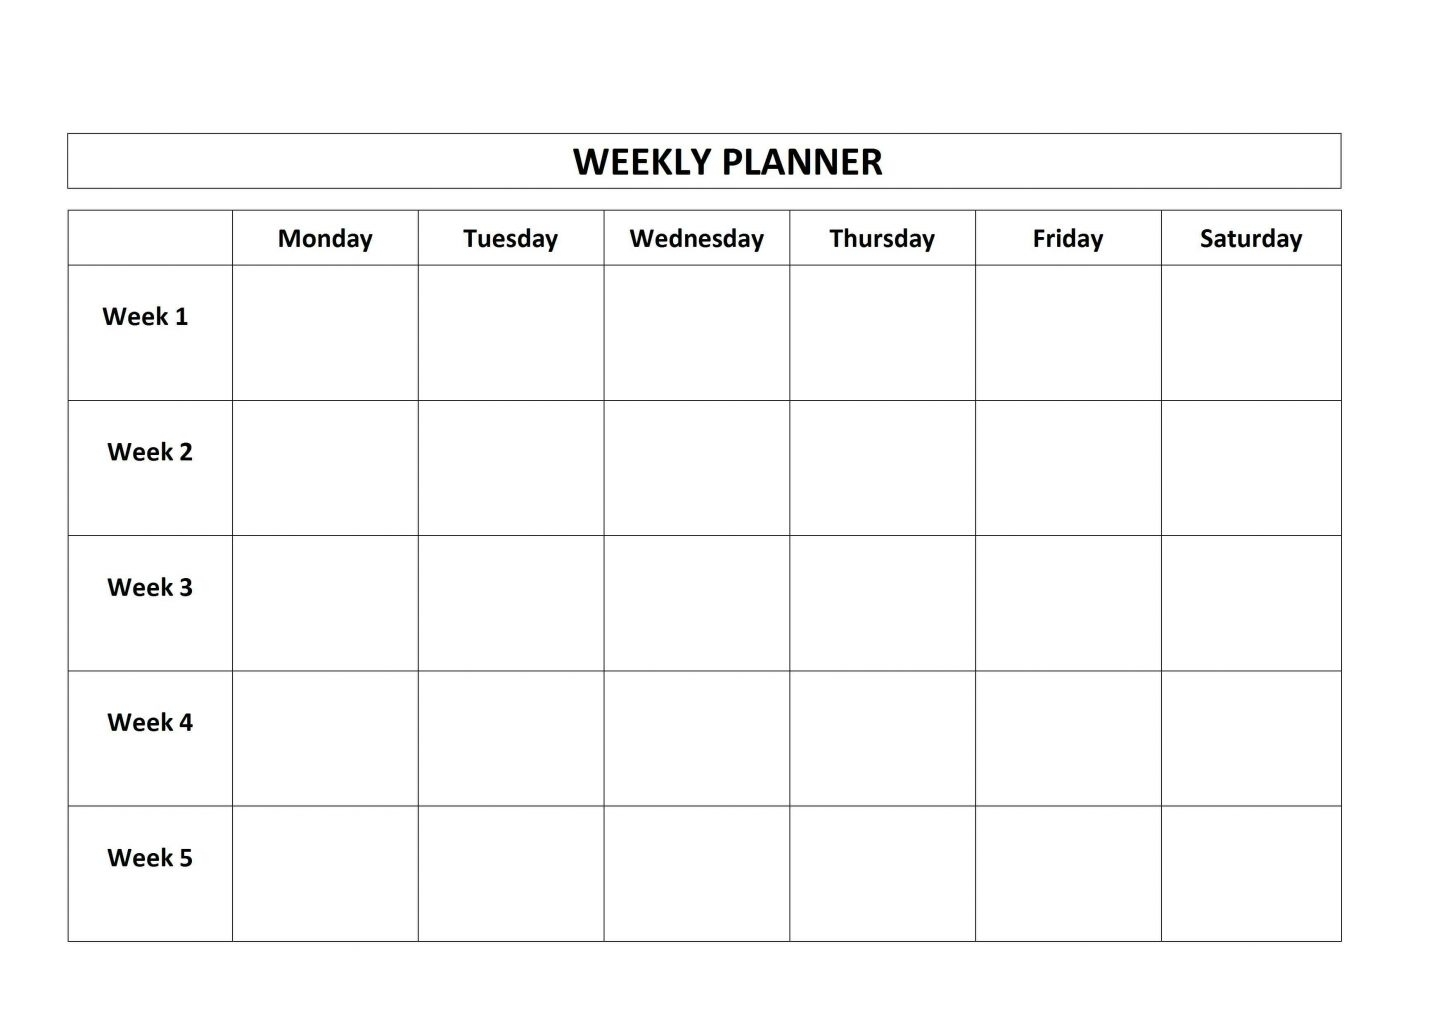 Monday To Sunday Schedule Template Timetable Calendar Weekly Thru with Monday - Sunday Weekly Schedule